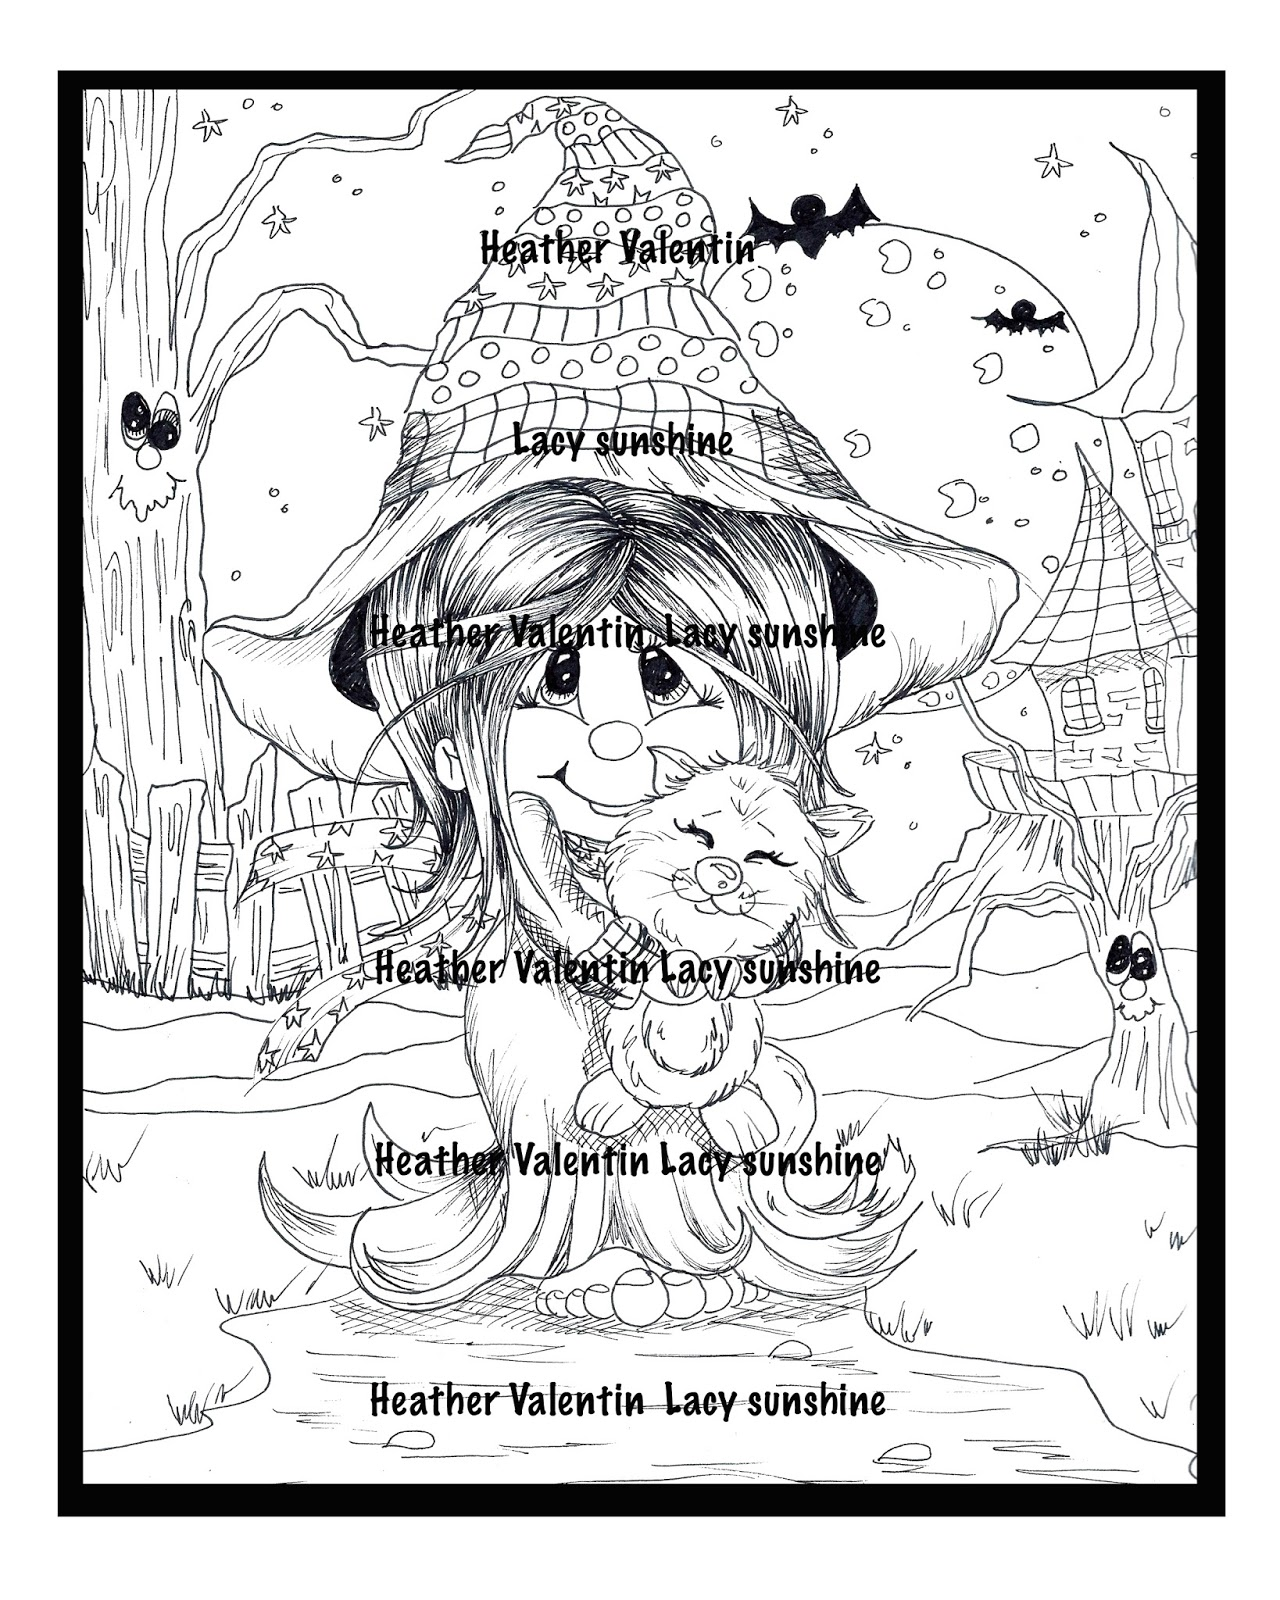 you can also get the individual download coloring pages of these images at our lacy sunshine shoppe in the hocus pocus section